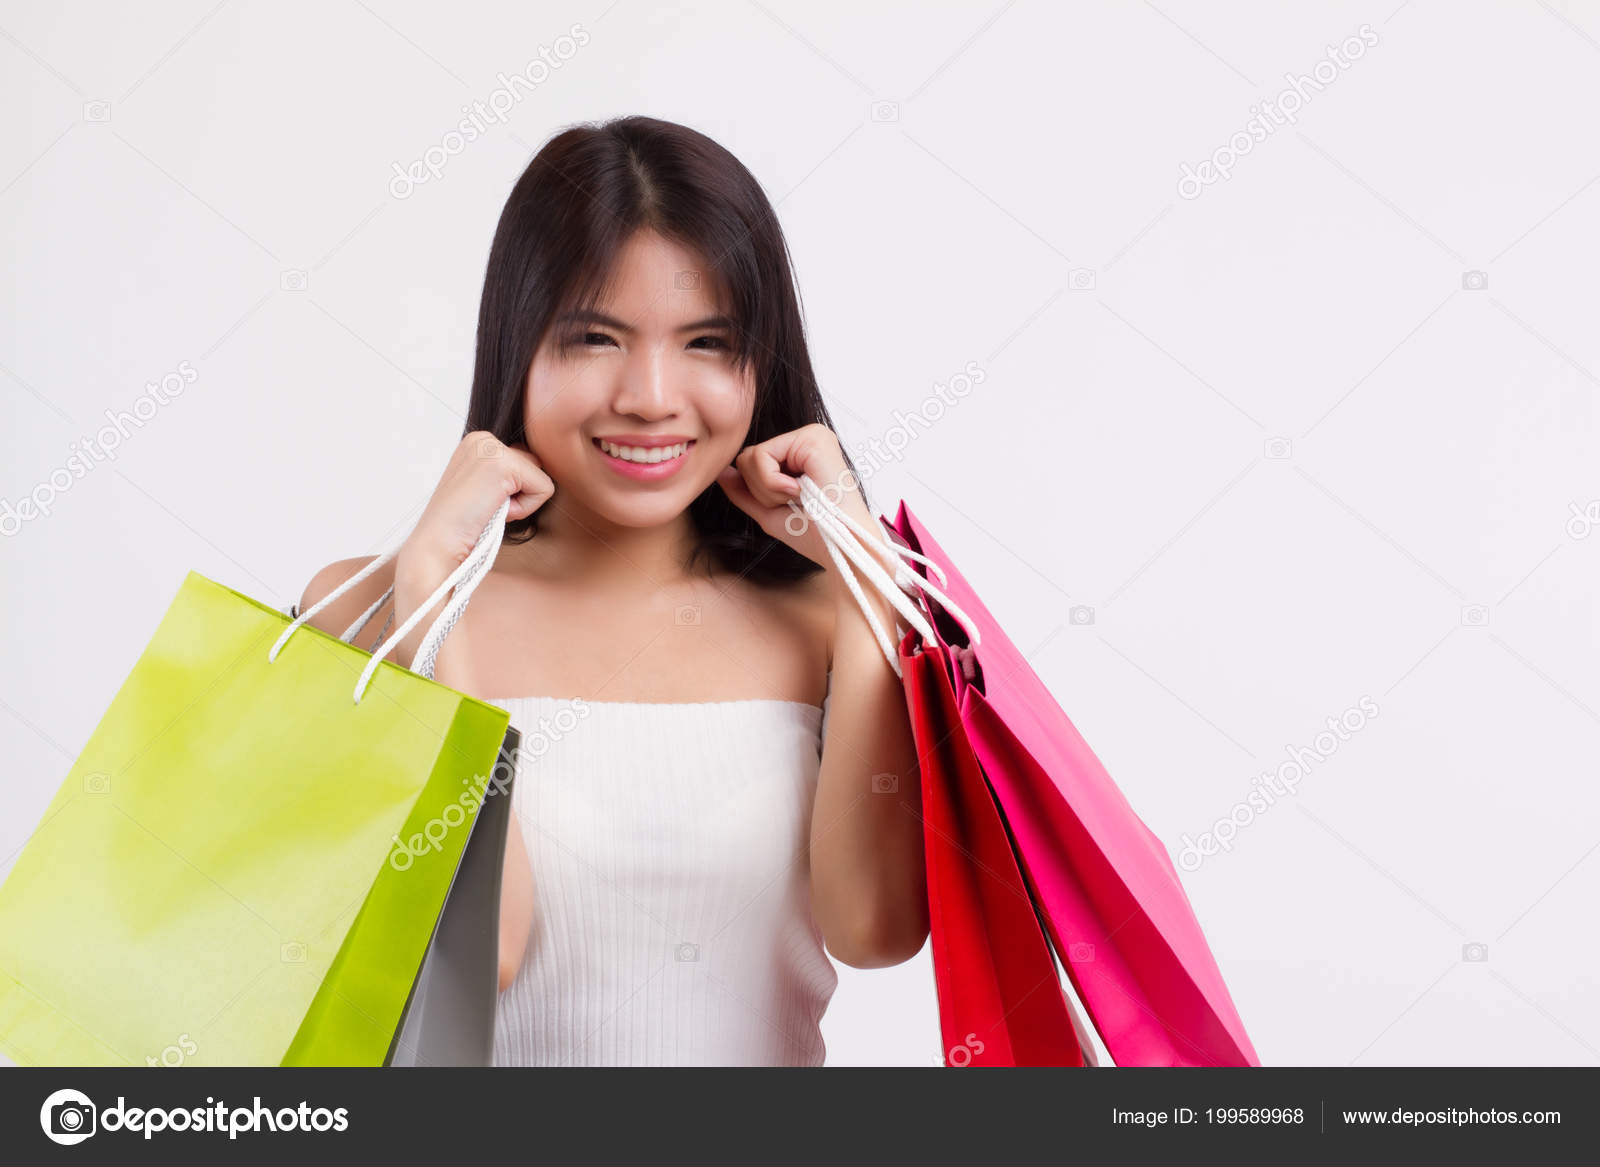 c1ab3dbbdb46a Happy smiling girl shopping, excited woman holding shopping bag isolated,  smiling girl happy woman shopping colorful bag, asian lady happy shopping  concept ...